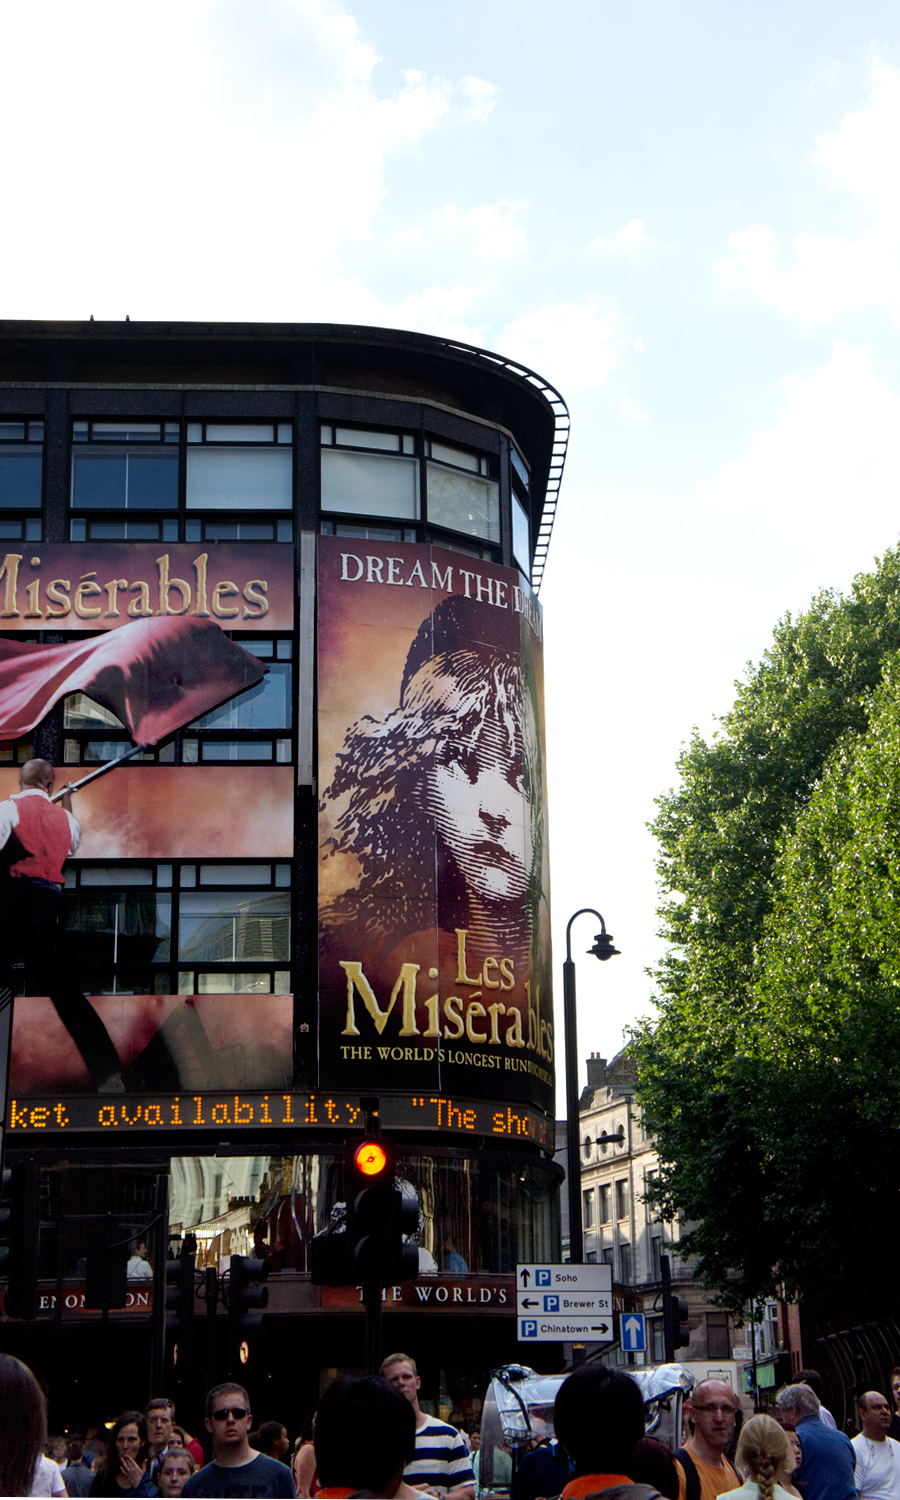 2014-les-miserables-musical-london-uk-01